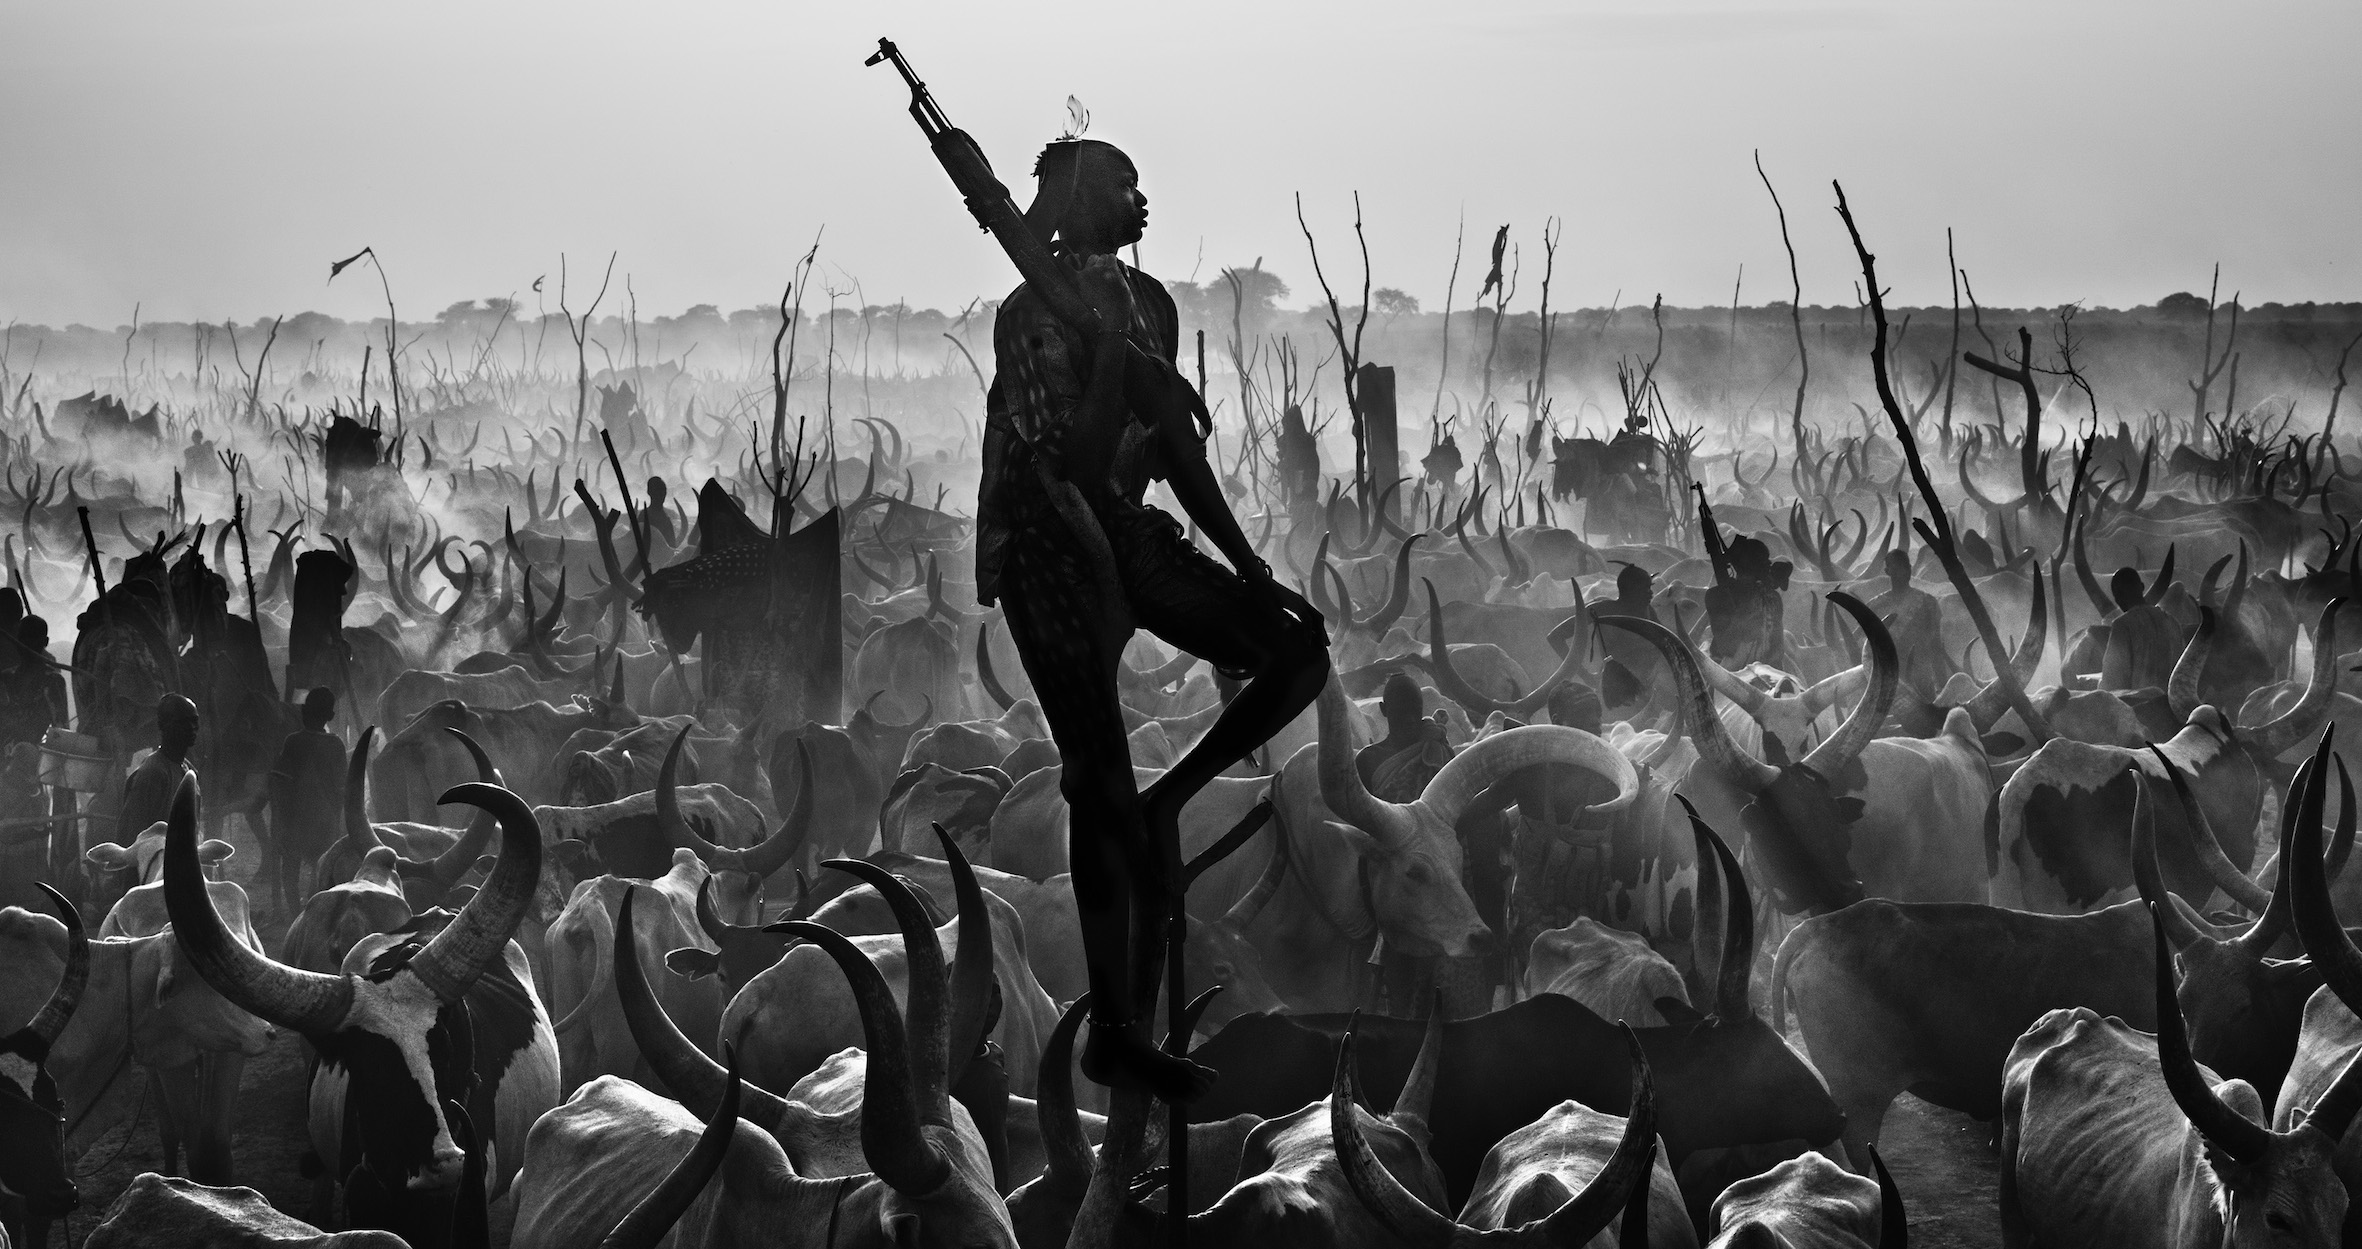 David Yarrow - The Proud Nightwatchman, Yirol, South Sudan, 2015.